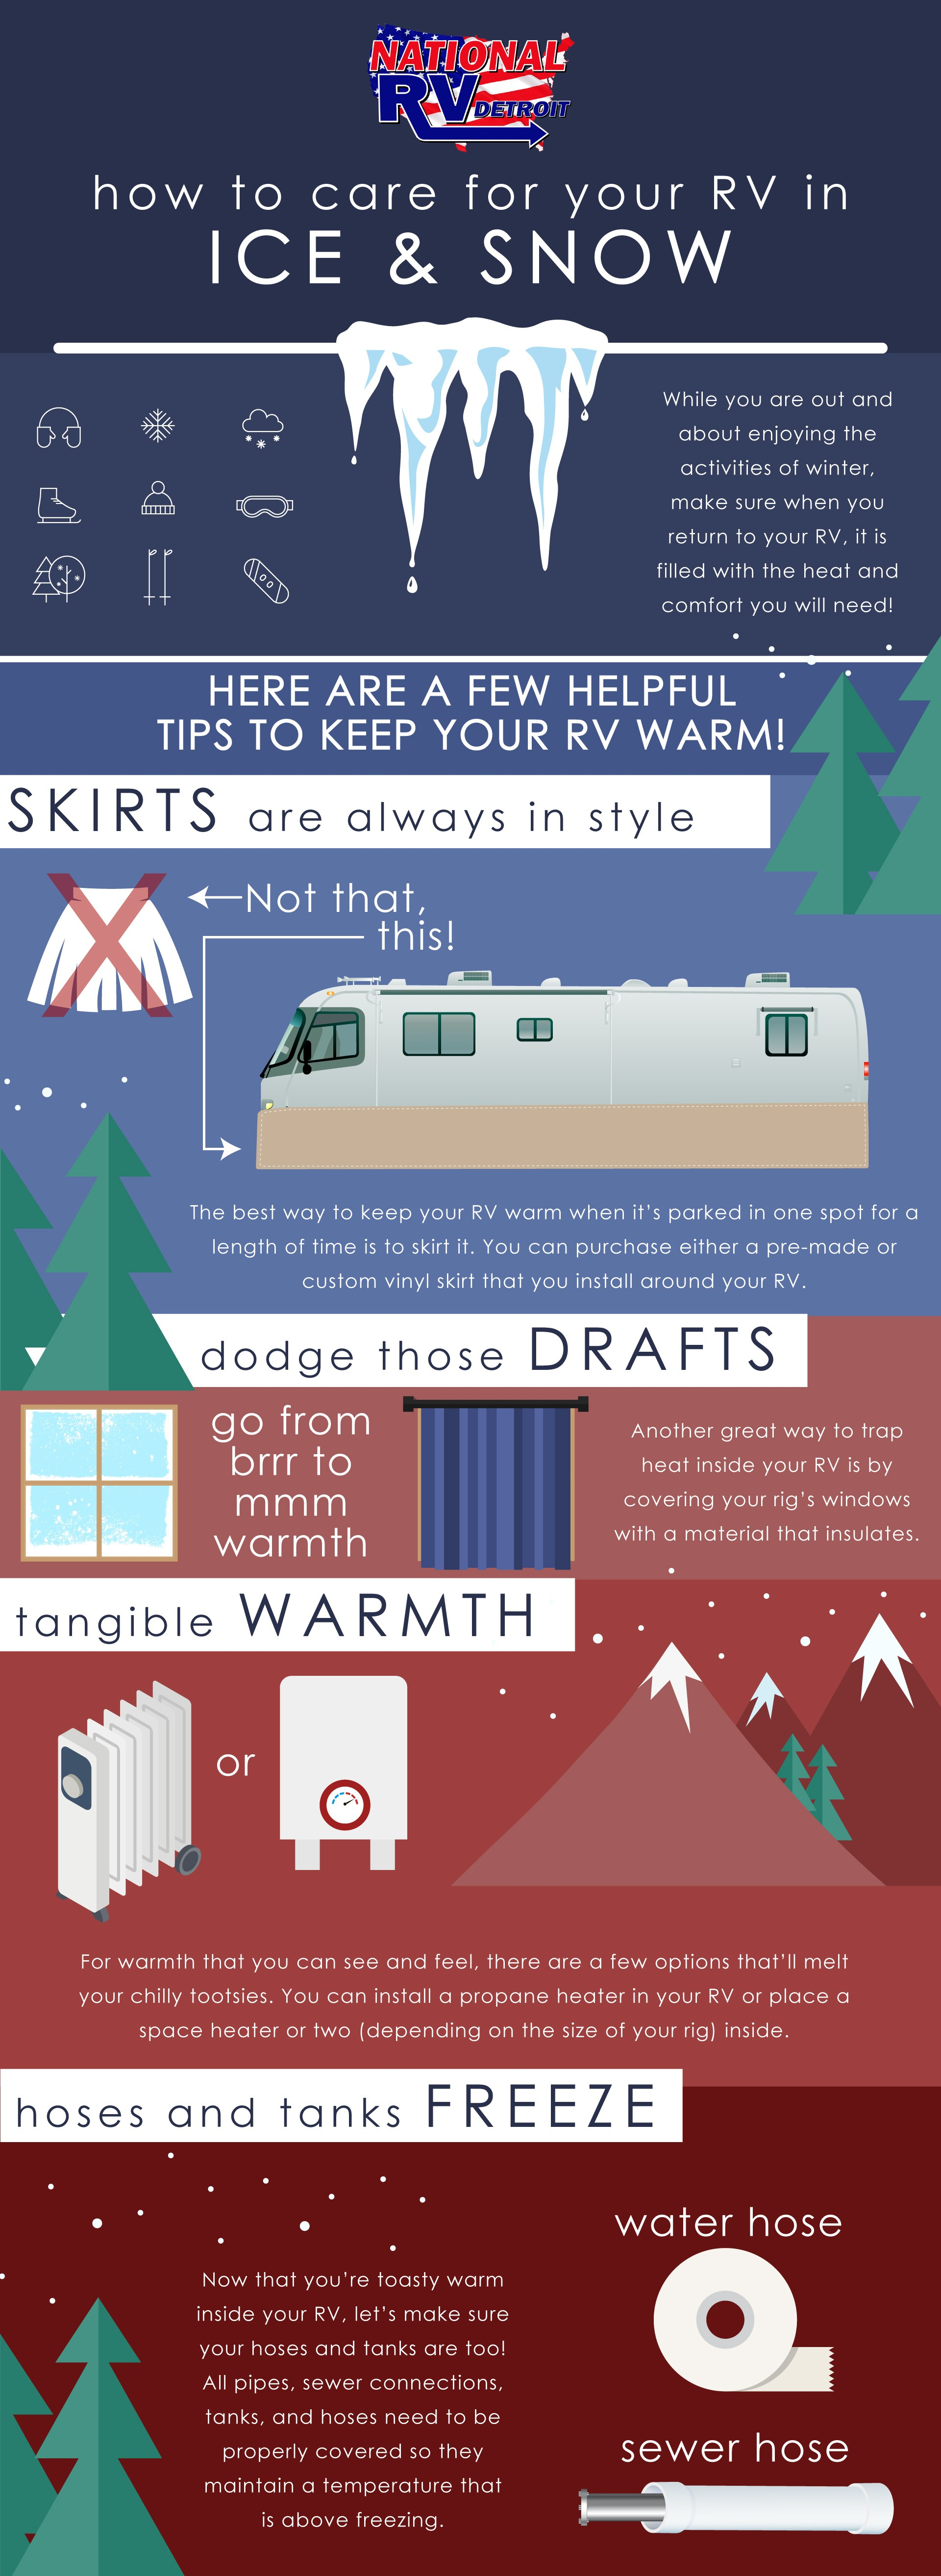 ice and snow infographic